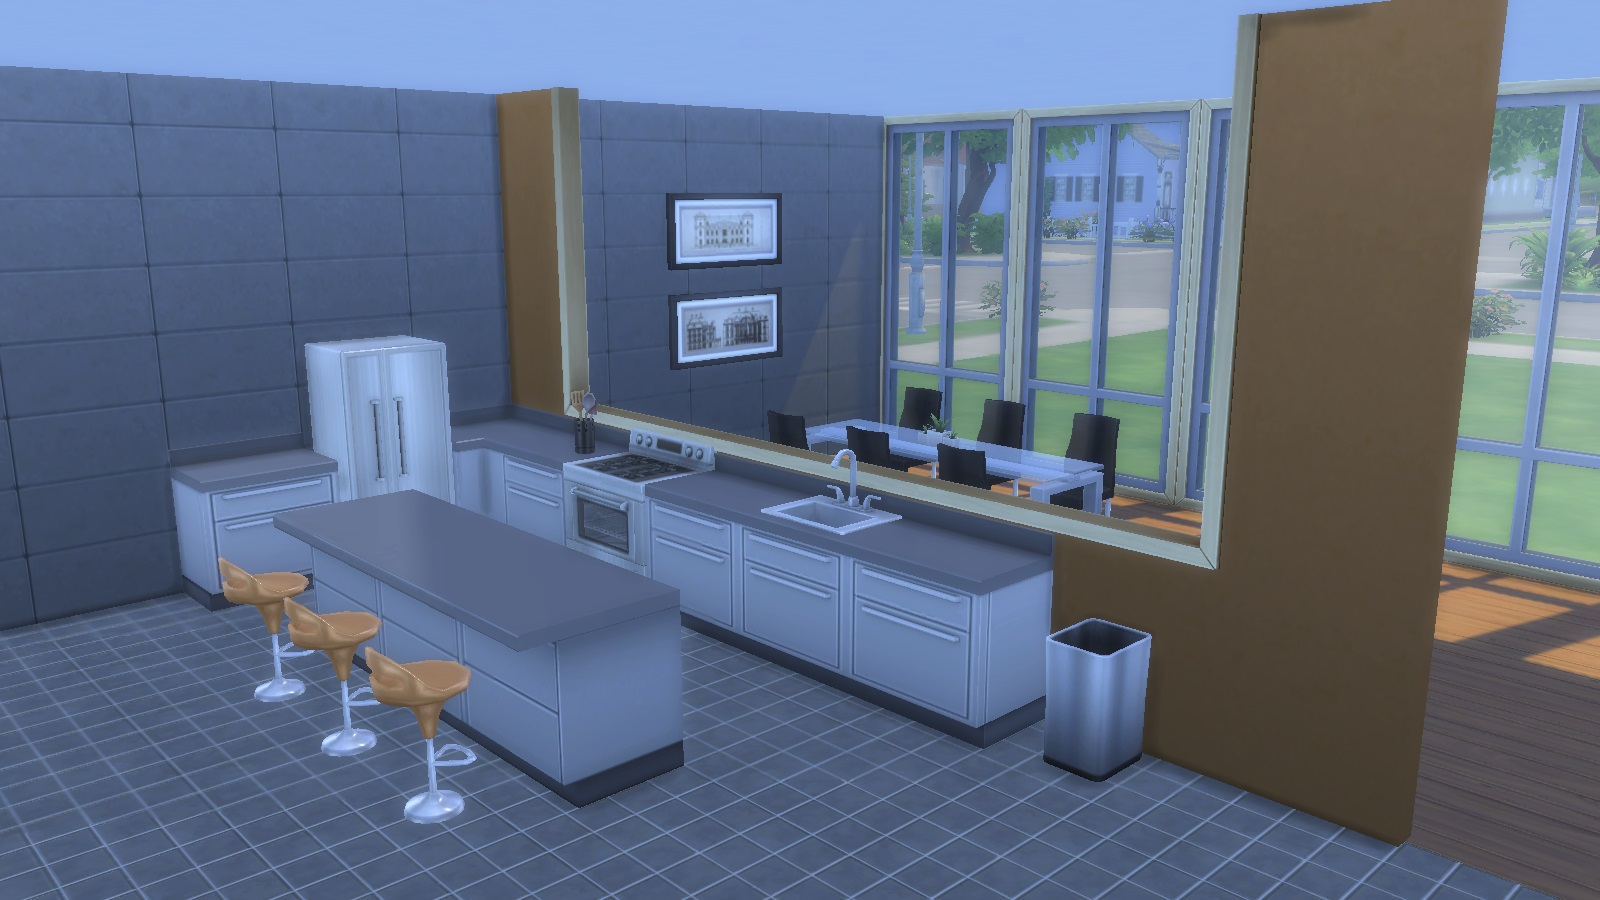 Fake Windows For Walls : My sims faux half wall windows by chaggith